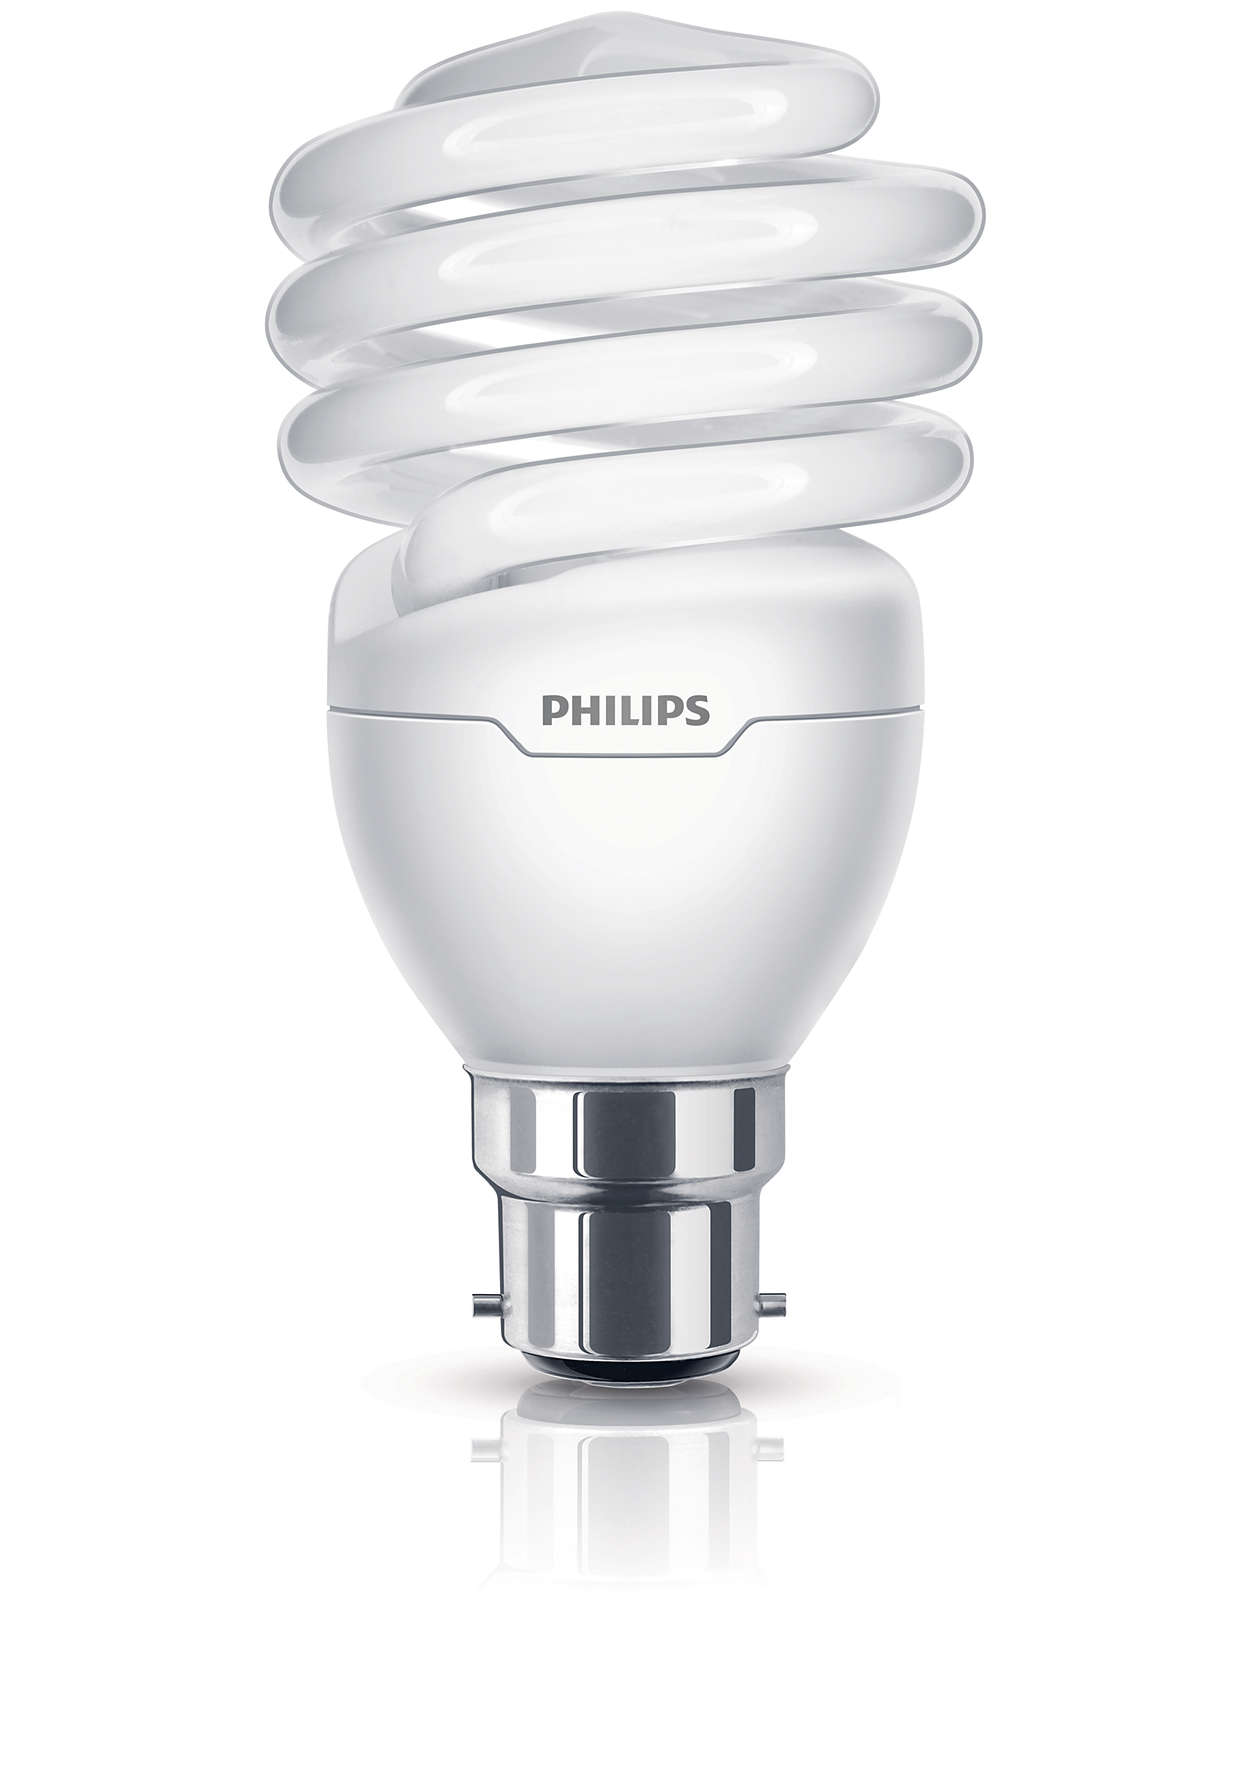 Tornado Spiral Energy Saving Bulb 8718291679226 Philips